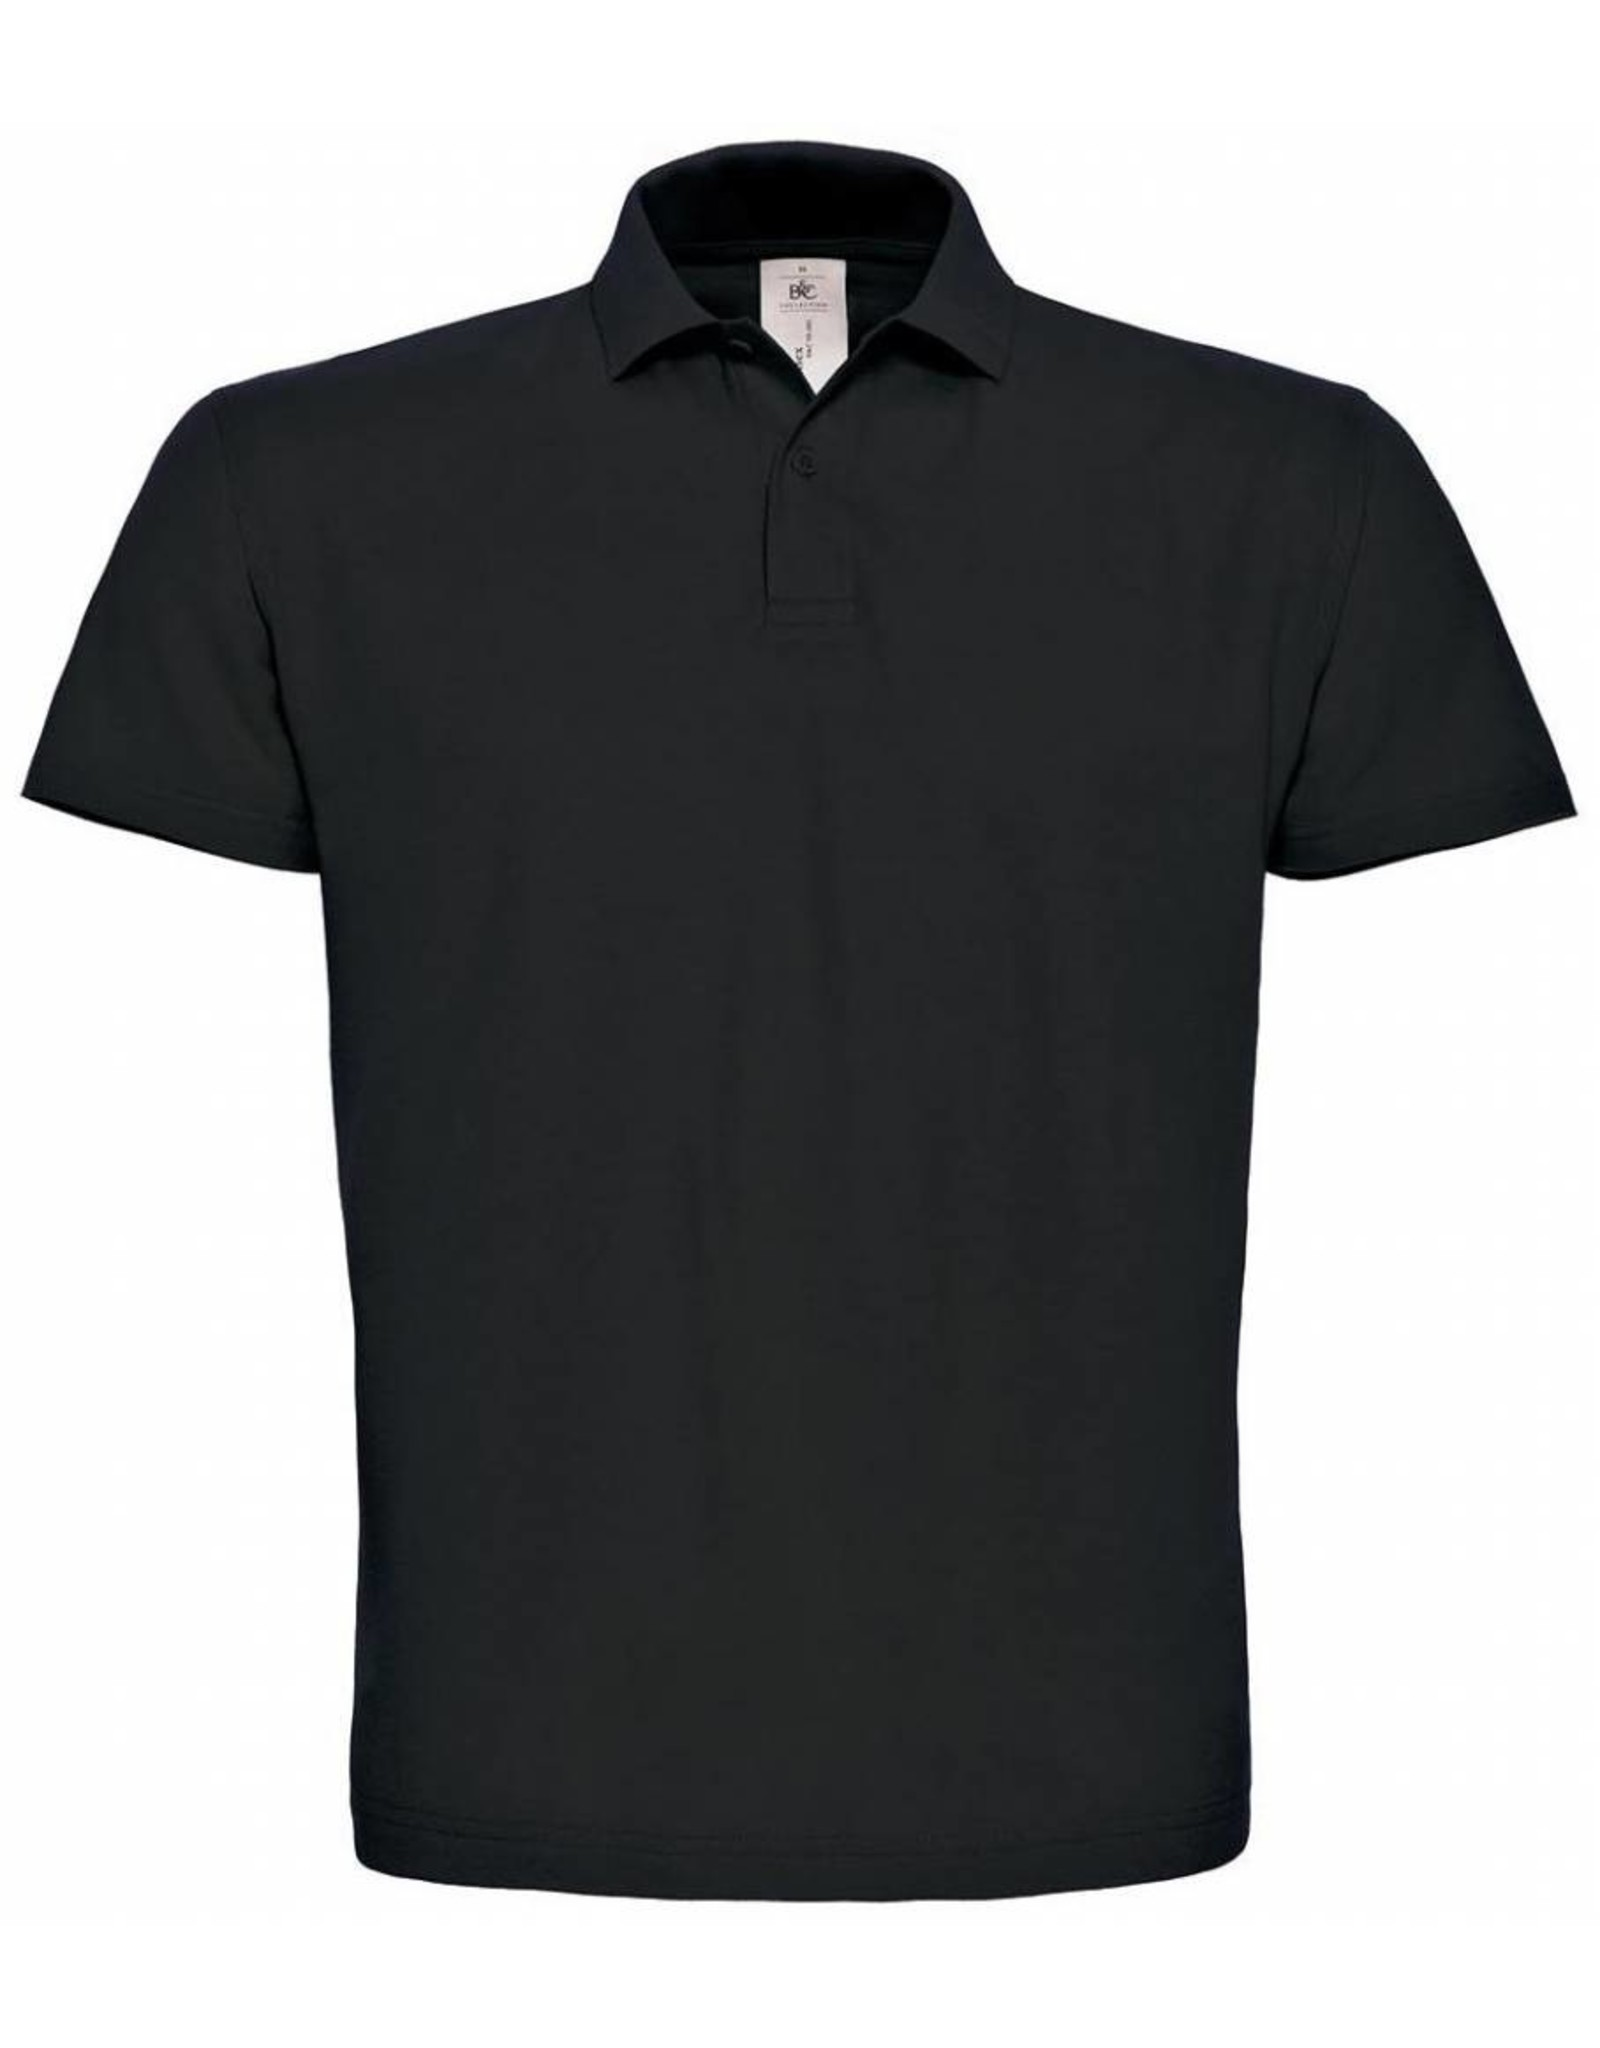 Hockeyspullen.nl BLACK POLO MAN